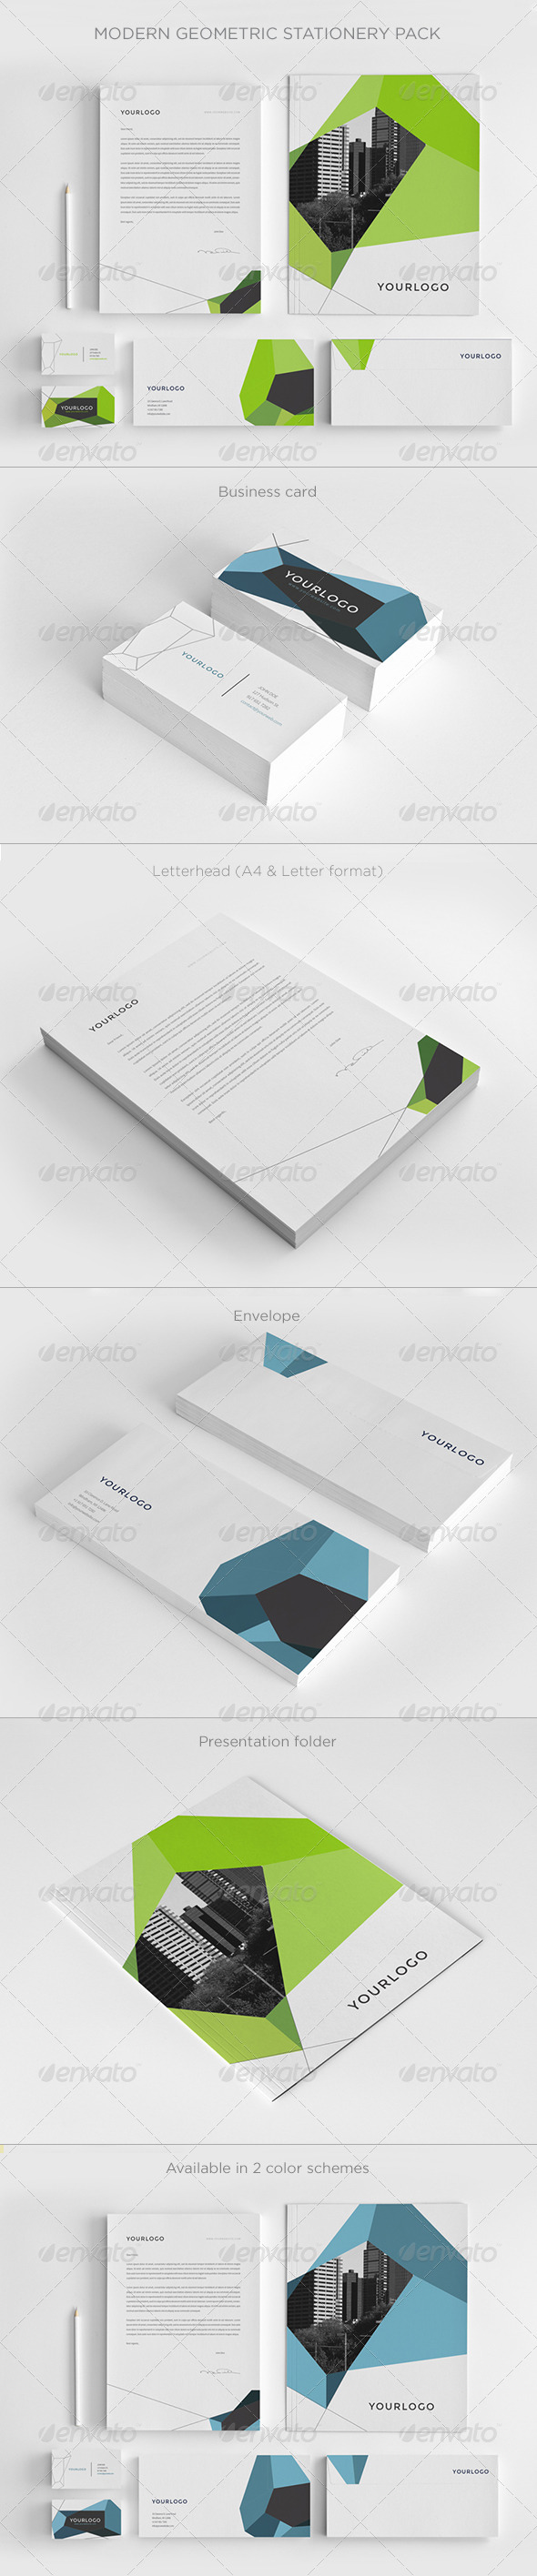 GraphicRiver Modern Geometric Stationery Pack 7596186